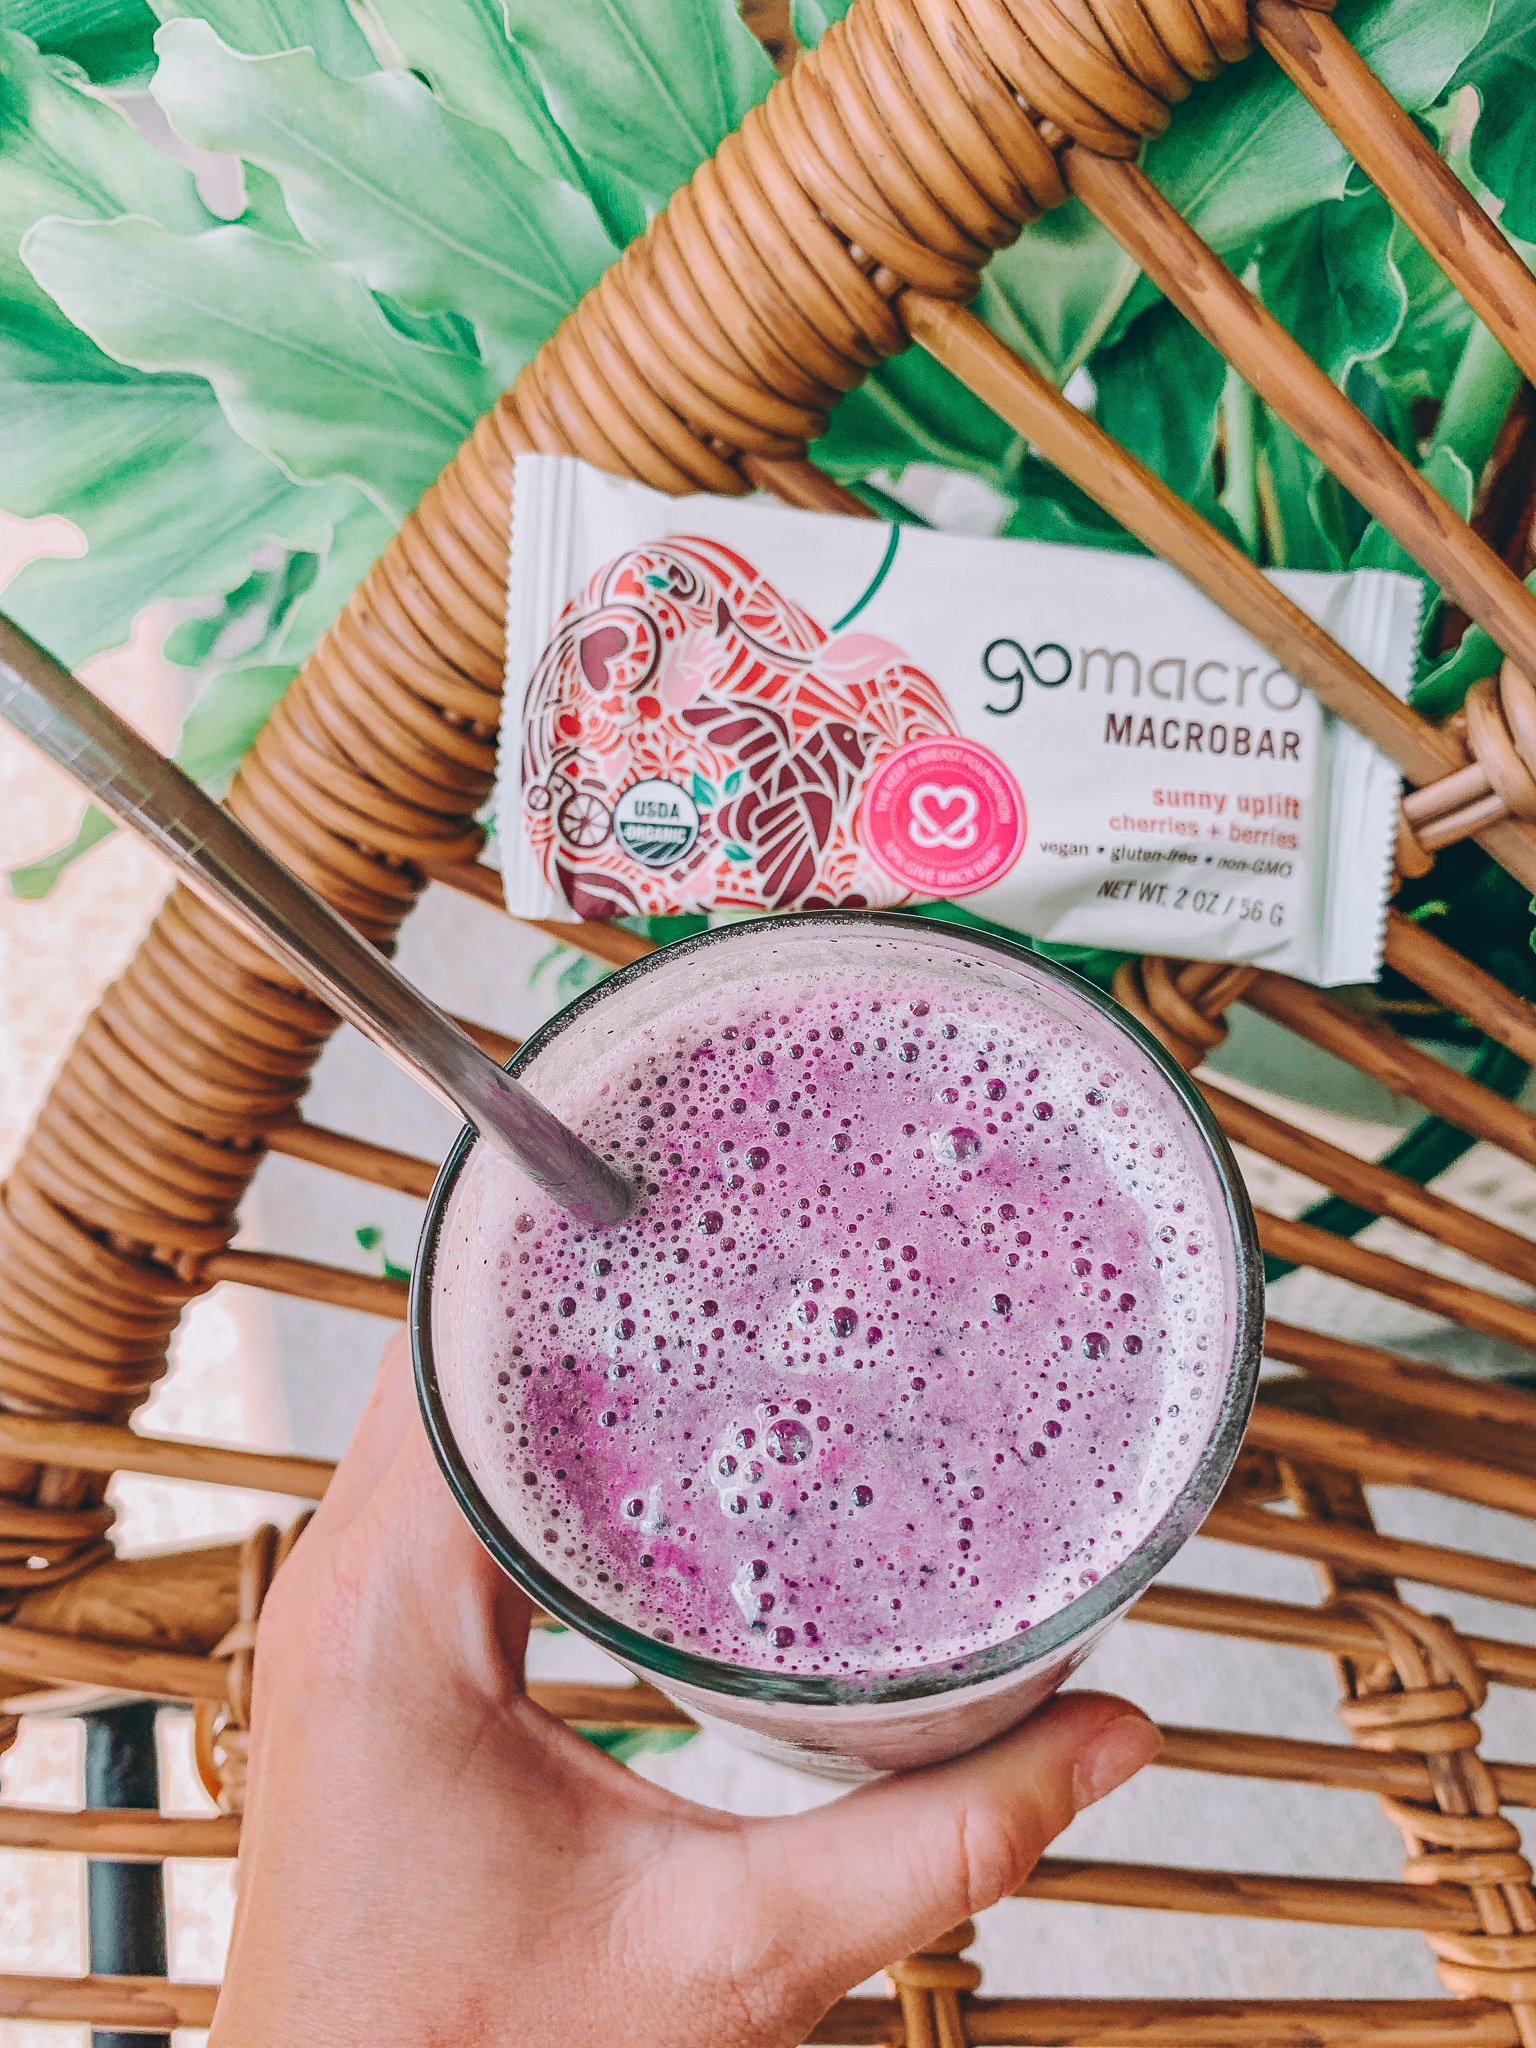 go macro bar pre run fuel healthy vegan gluten free dairy free protein smoothie delicious low calorie high protein refreshing summer health get fit lifestyle